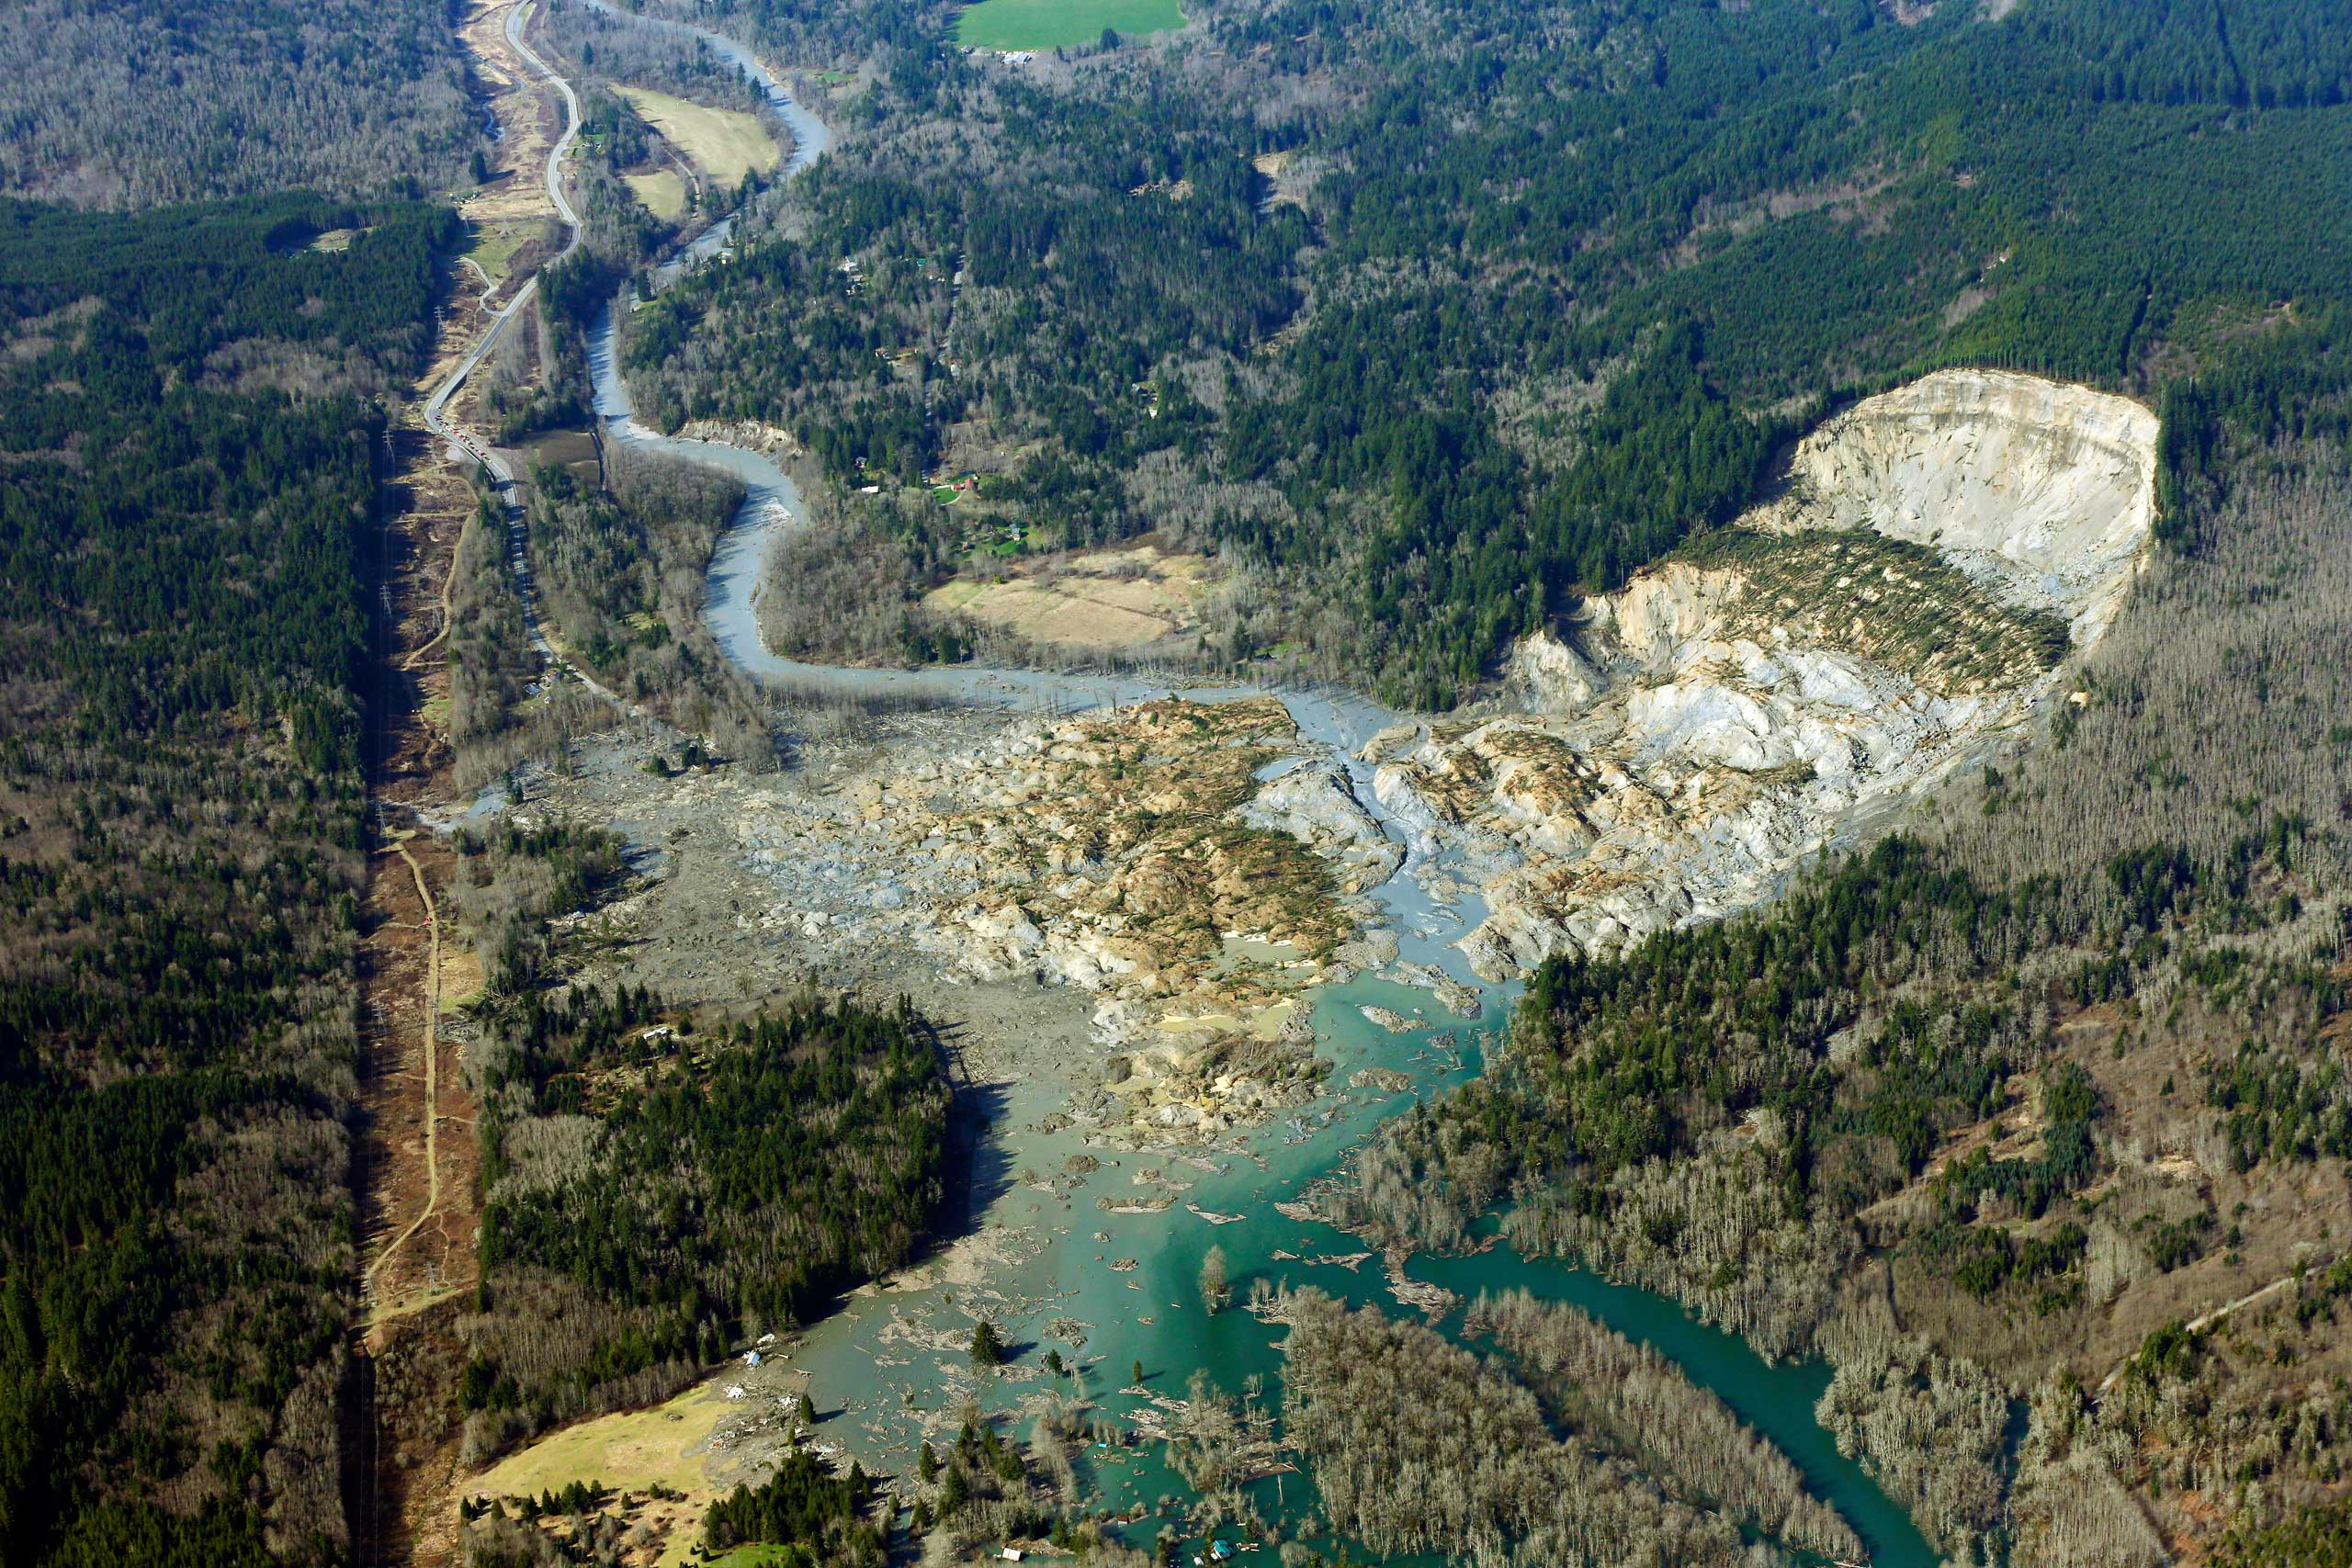 An aerial view of a mudslide that killed 43 people near Arlington, Wash. March 24, 2014.